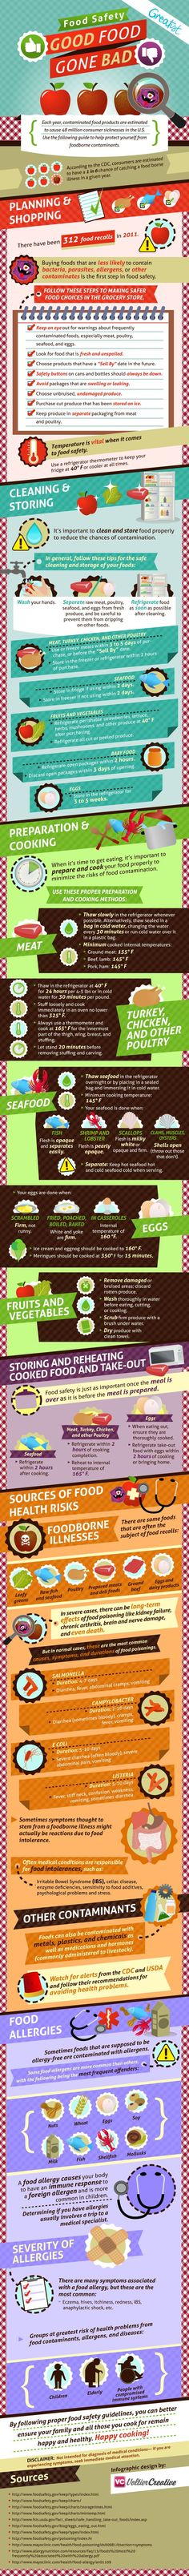 Here is a fantastic infographic about food safety and handling food - Good Food Gone Bad: Your Guide to Food... via www.bittopper.com/post.php?id=174437319053cabee6463147.65394124